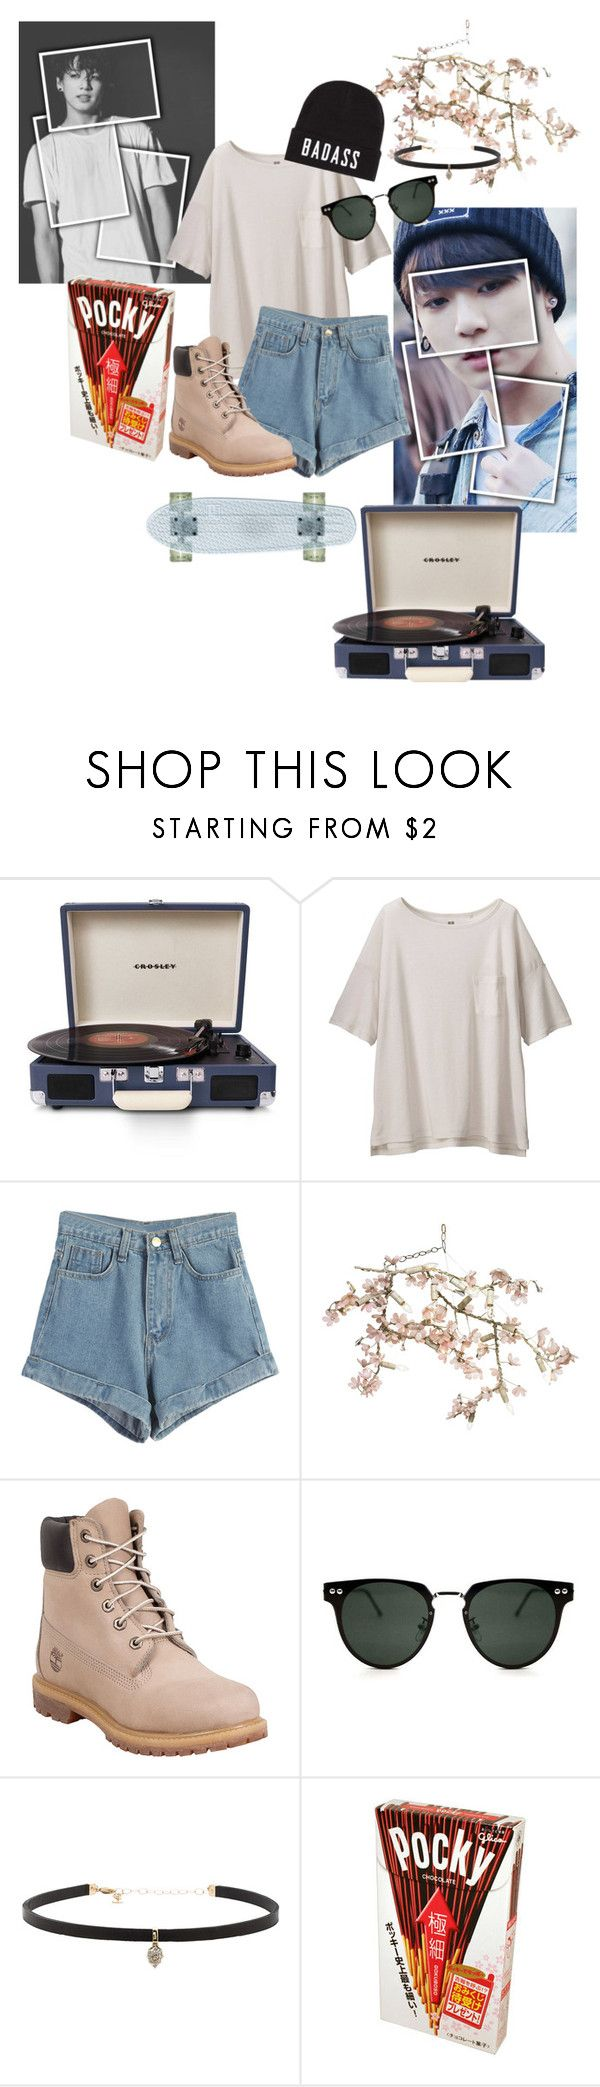 """""""let's escape and forget the world"""" by carterdiaz06 ❤ liked on Polyvore featuring Crosley Radio & Furniture, Uniqlo, WithChic, Canopy Designs, Timberland, Spitfire, Carbon & Hyde, kpop, MyStyle and bts"""